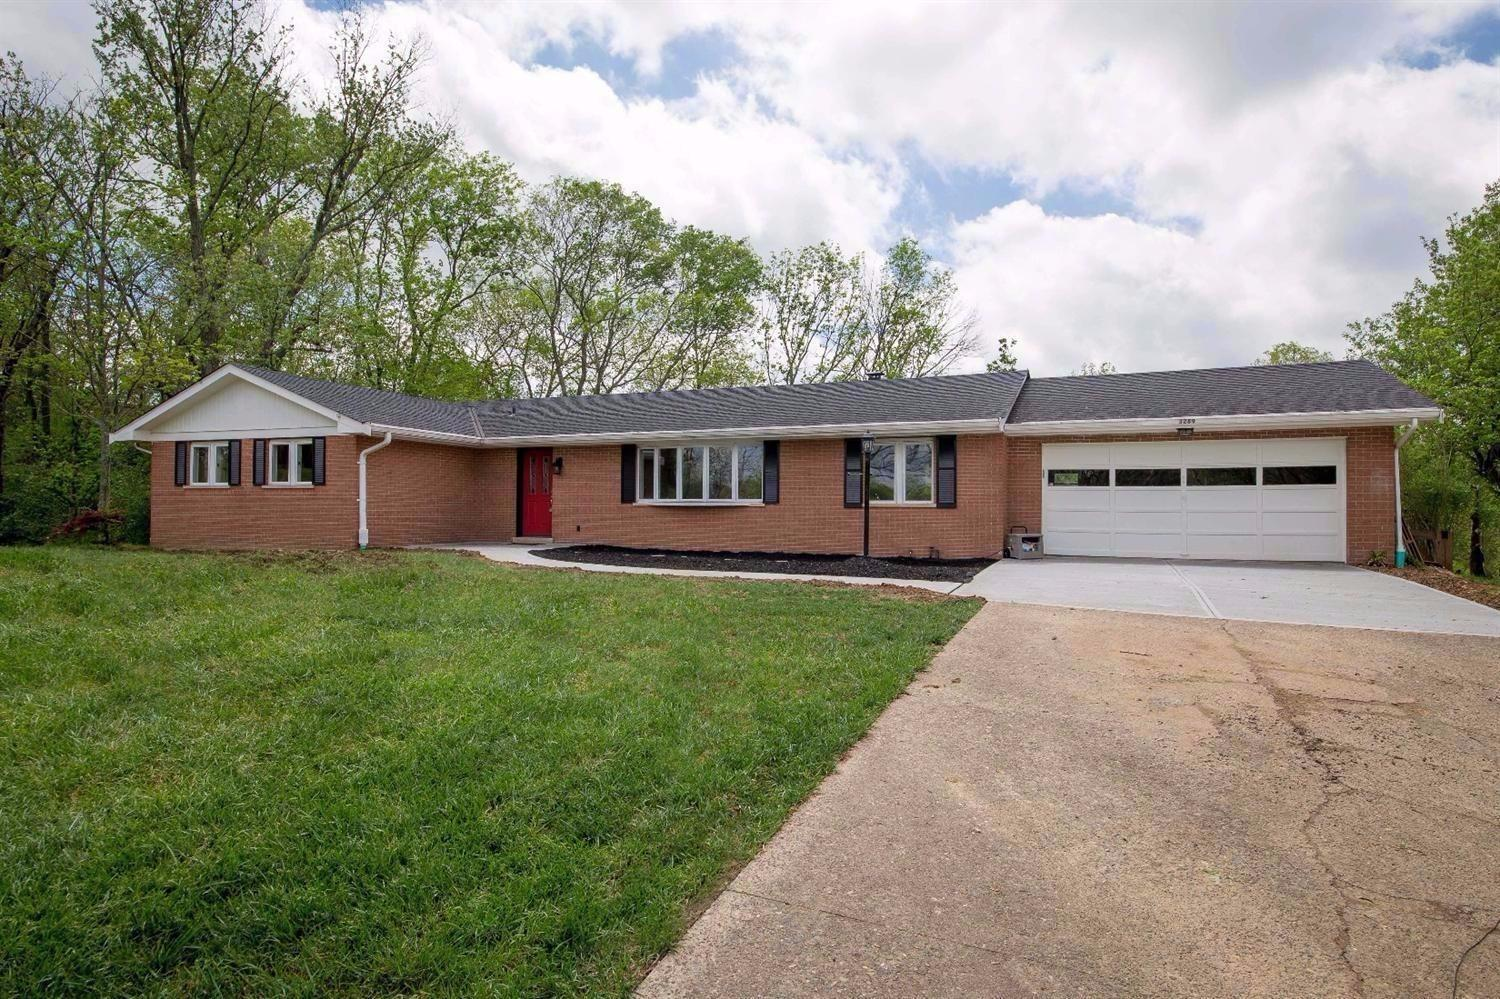 Photo 1 for 3289 Wayman Branch Rd Taylor Mill, KY 41015